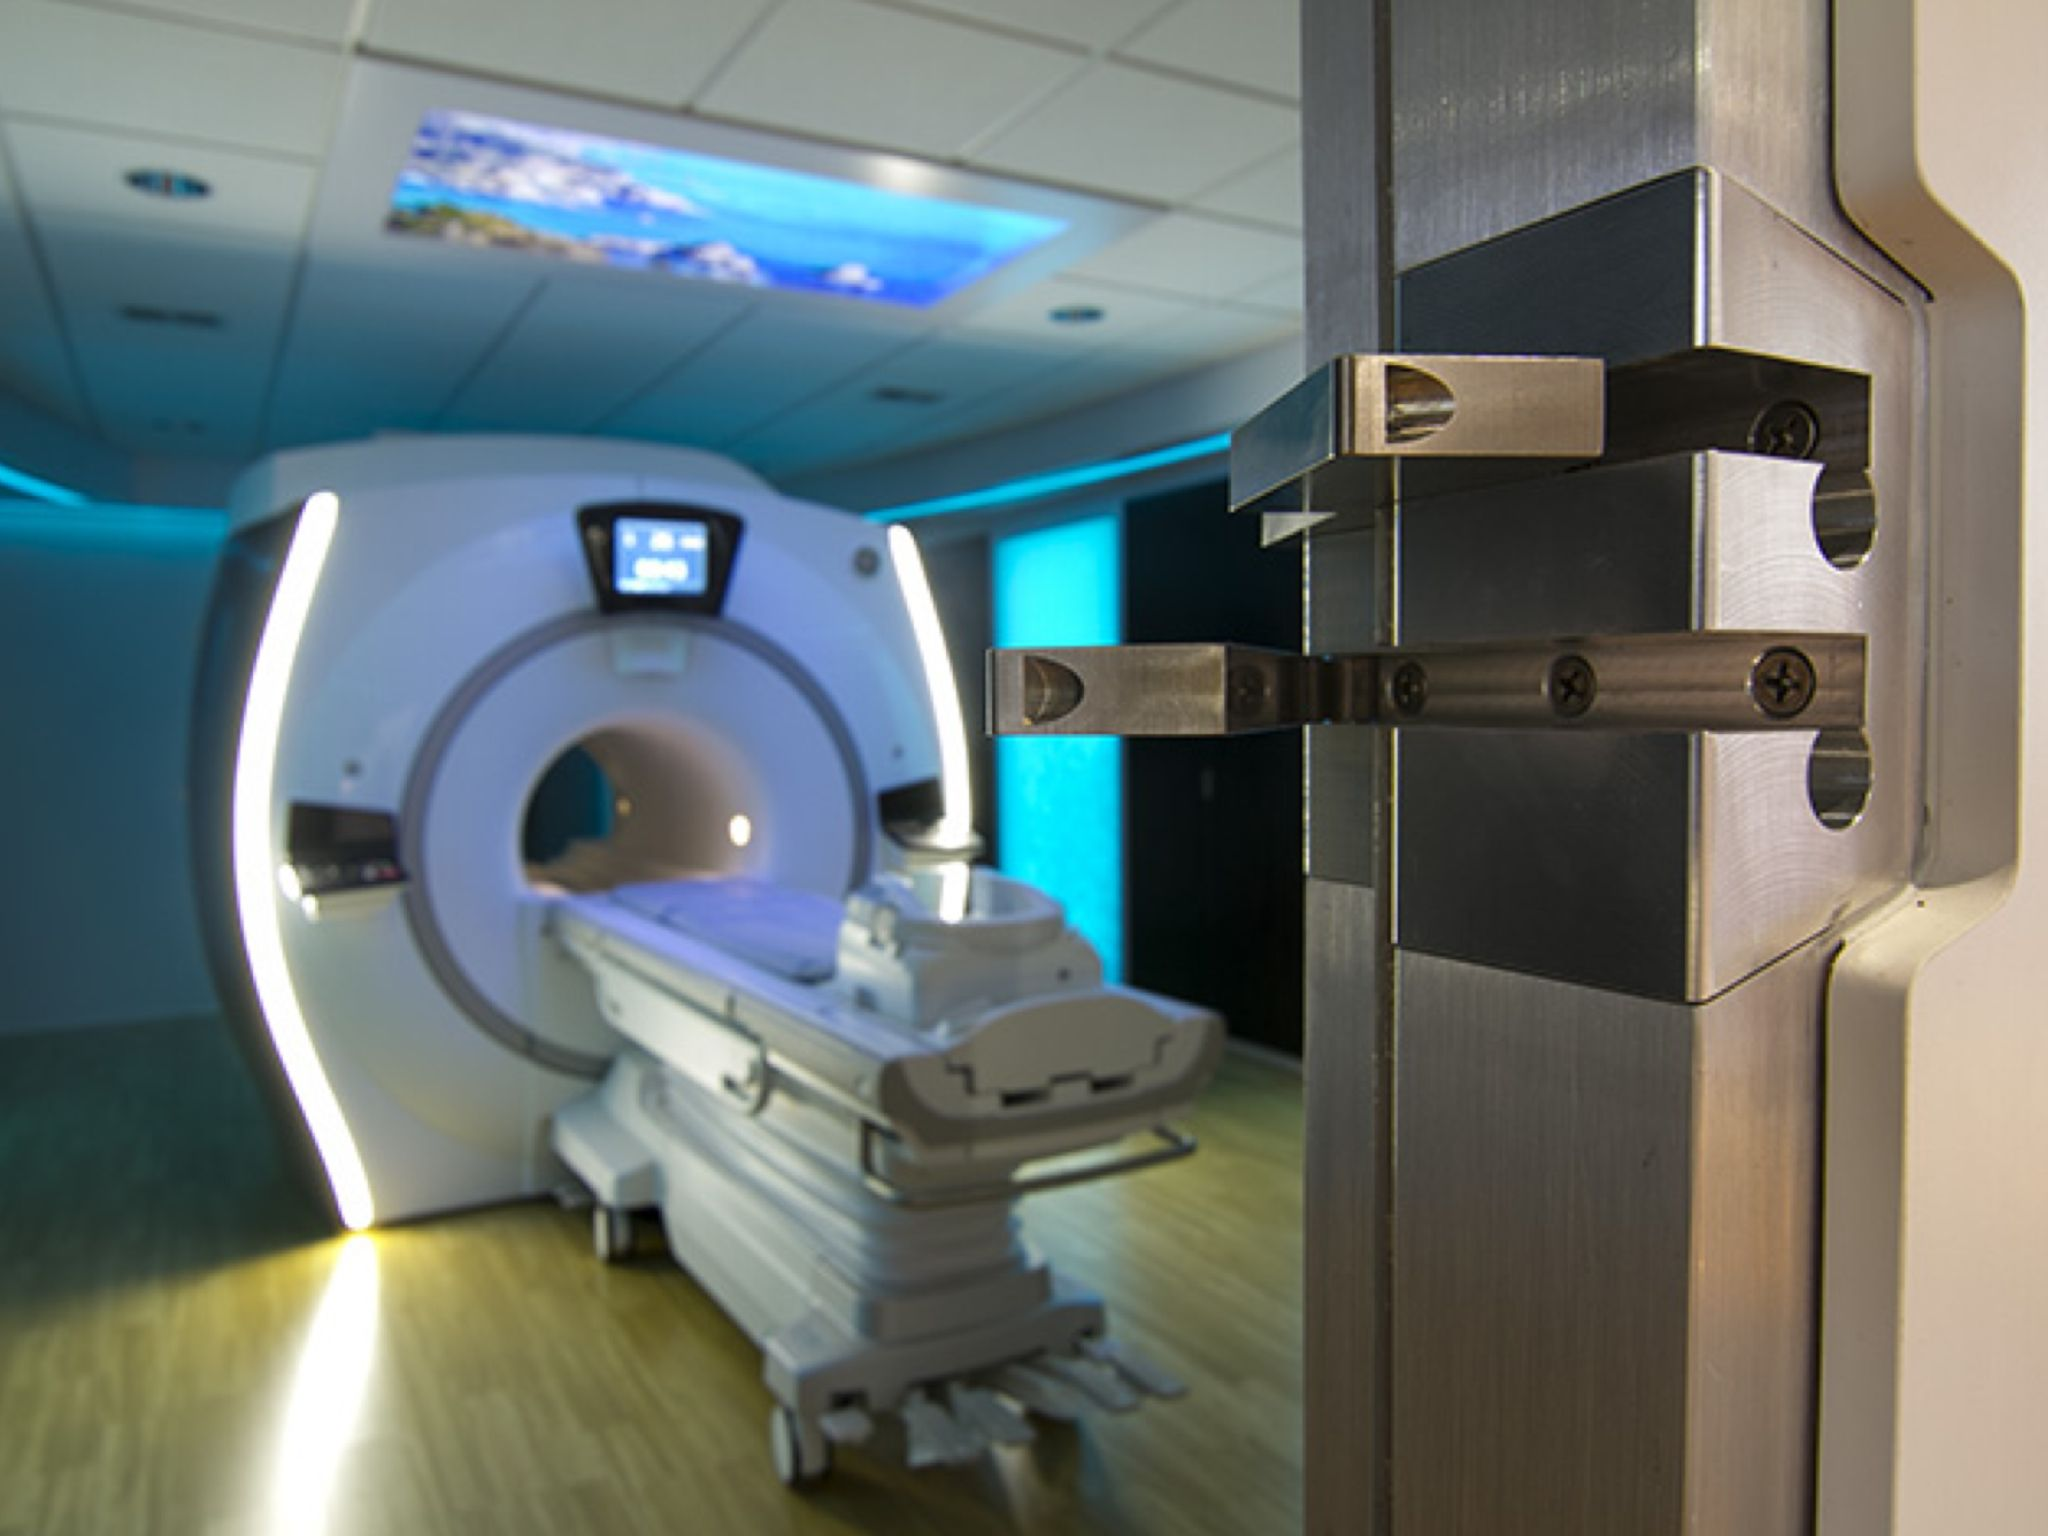 The RSNA Caring MR Suite featuring our Children's Hospital